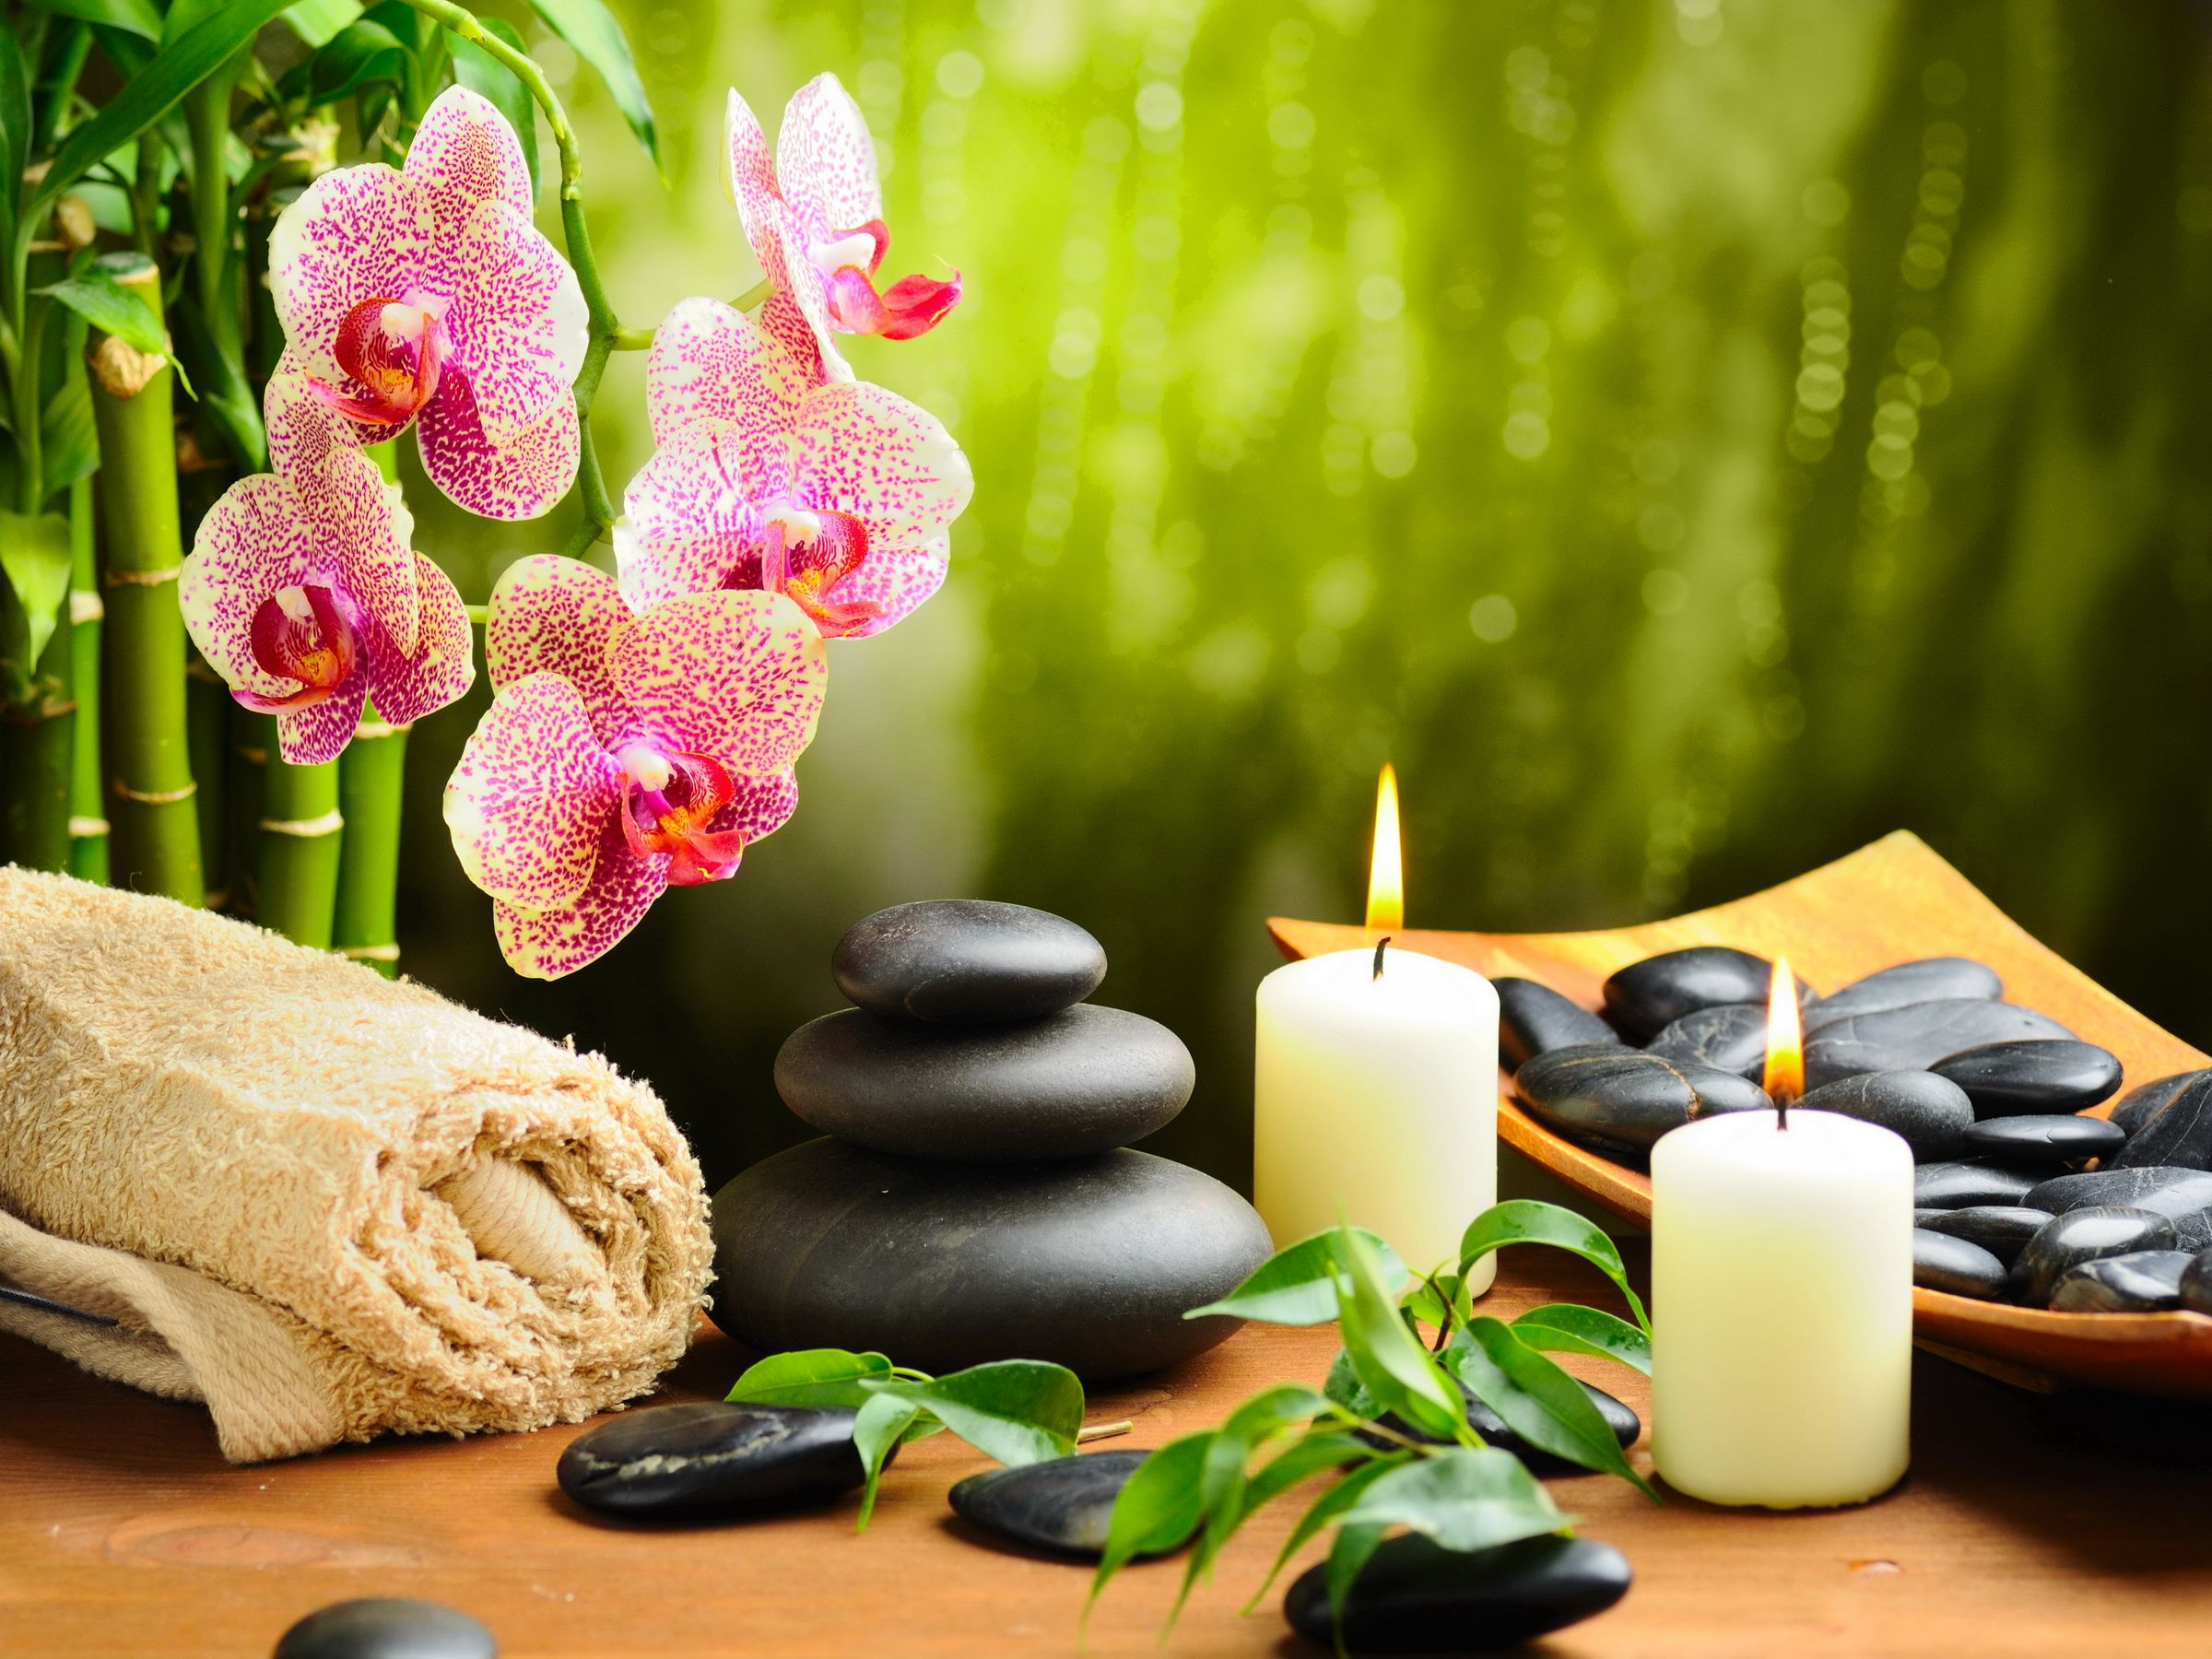 Barcelona Spa and Salon Fort Collins CO - Greeley CO | Spas ...